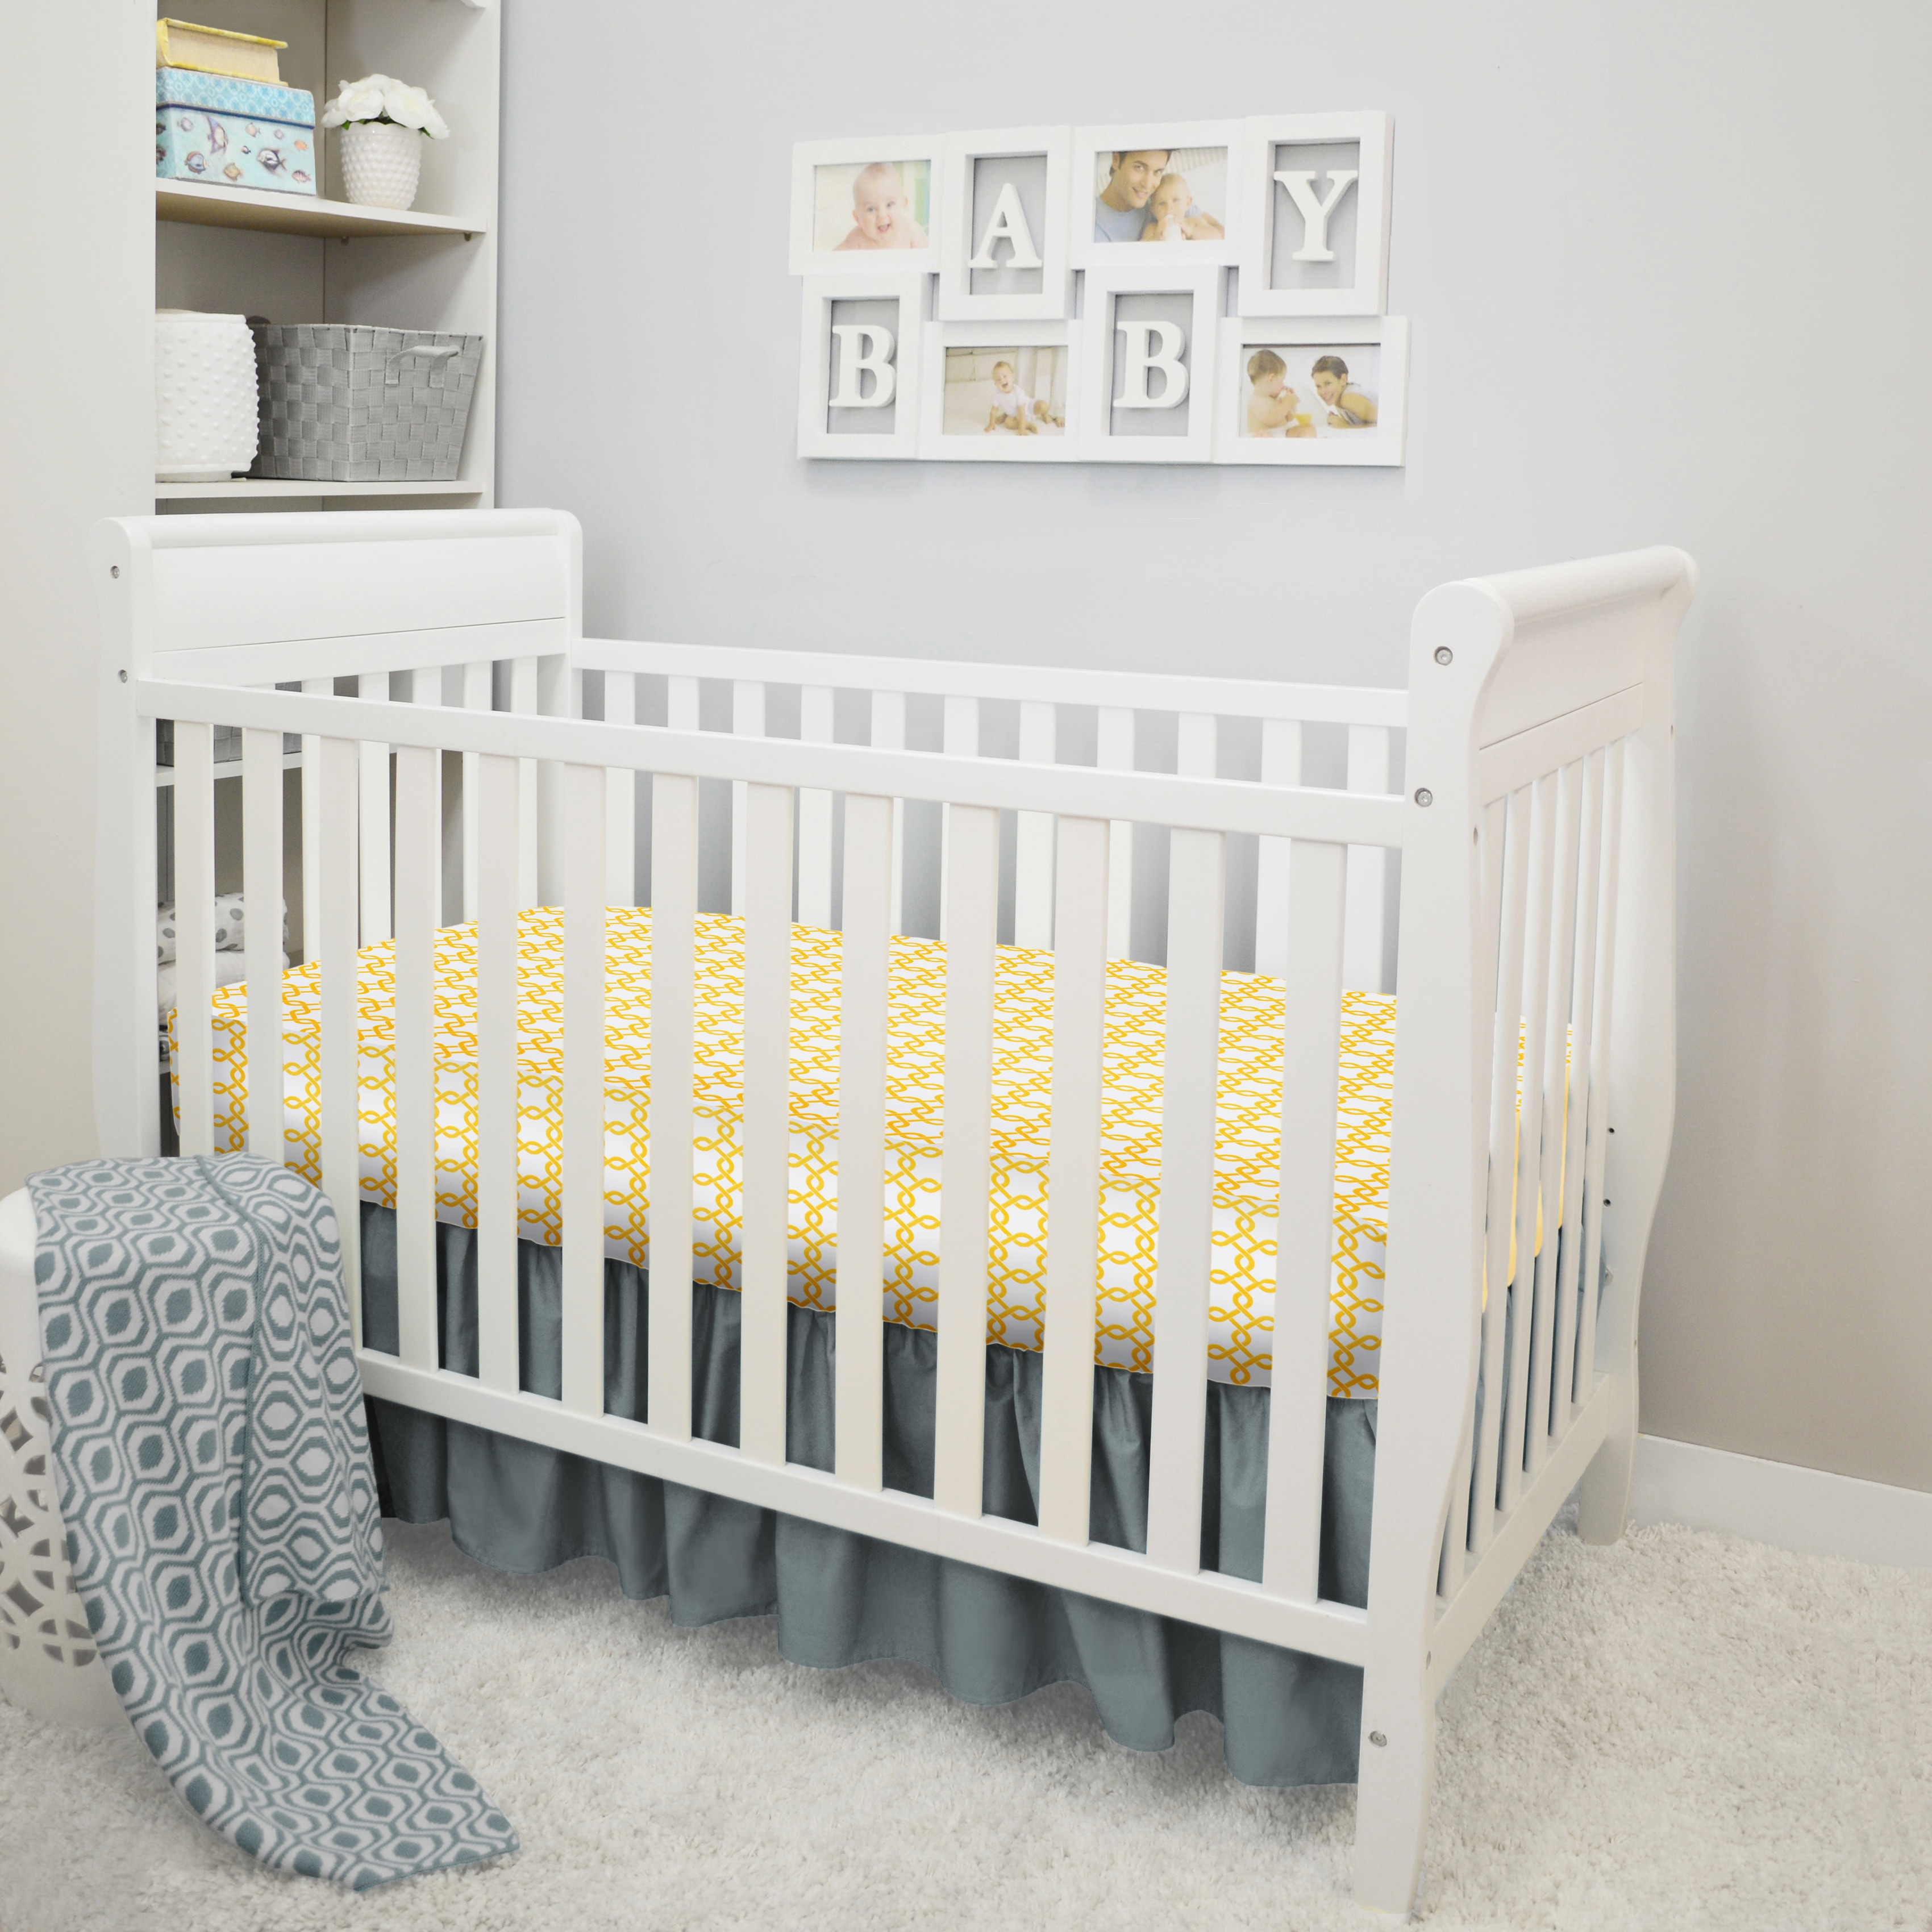 Shop American Baby Company Pink And Teal Cotton 5 Piece Baby Crib Bedding Set Overstock 12511740